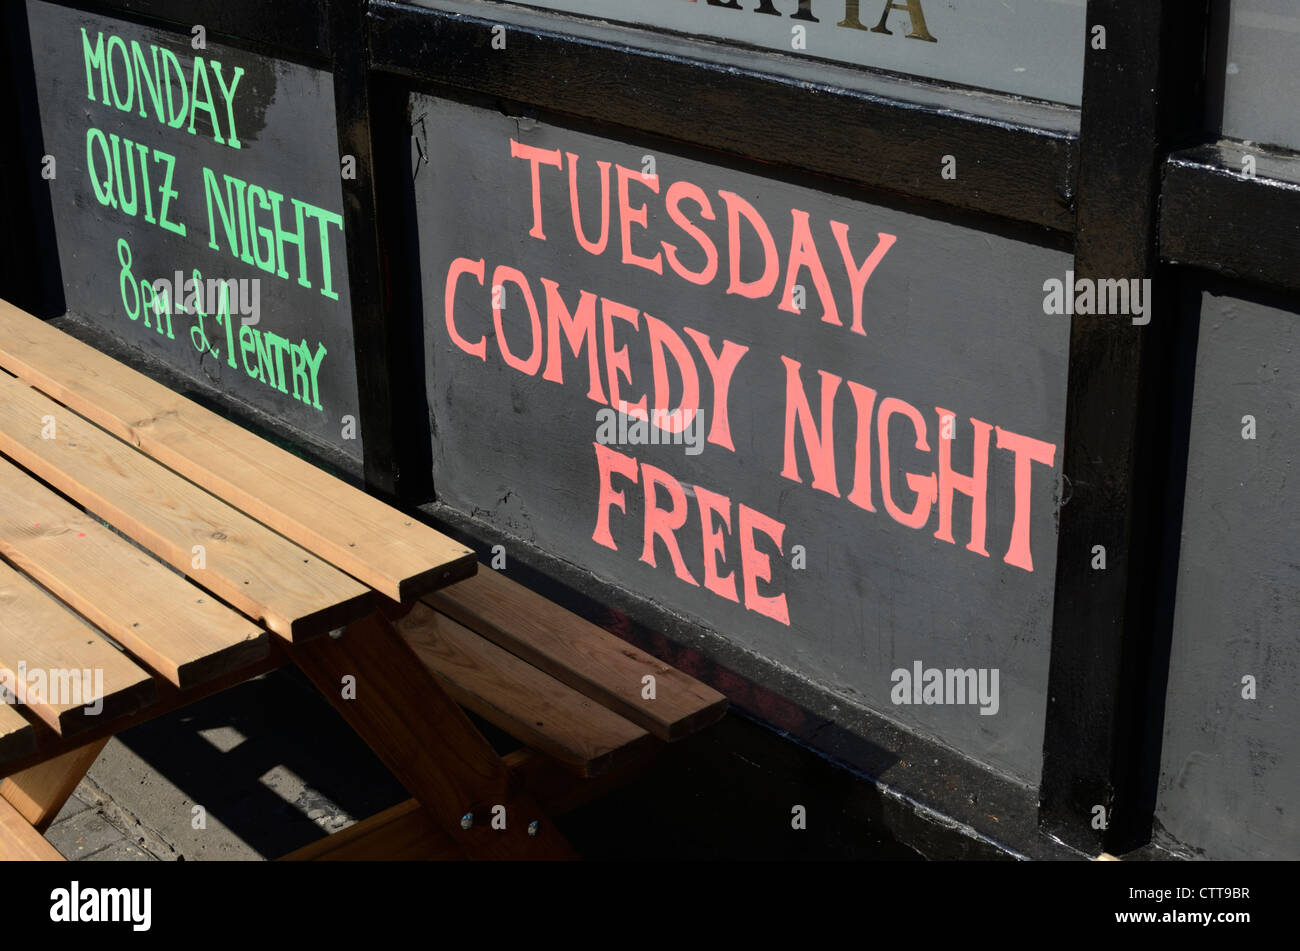 A board outside a pub promoting a comedy night and quiz night, London, UK Stock Photo